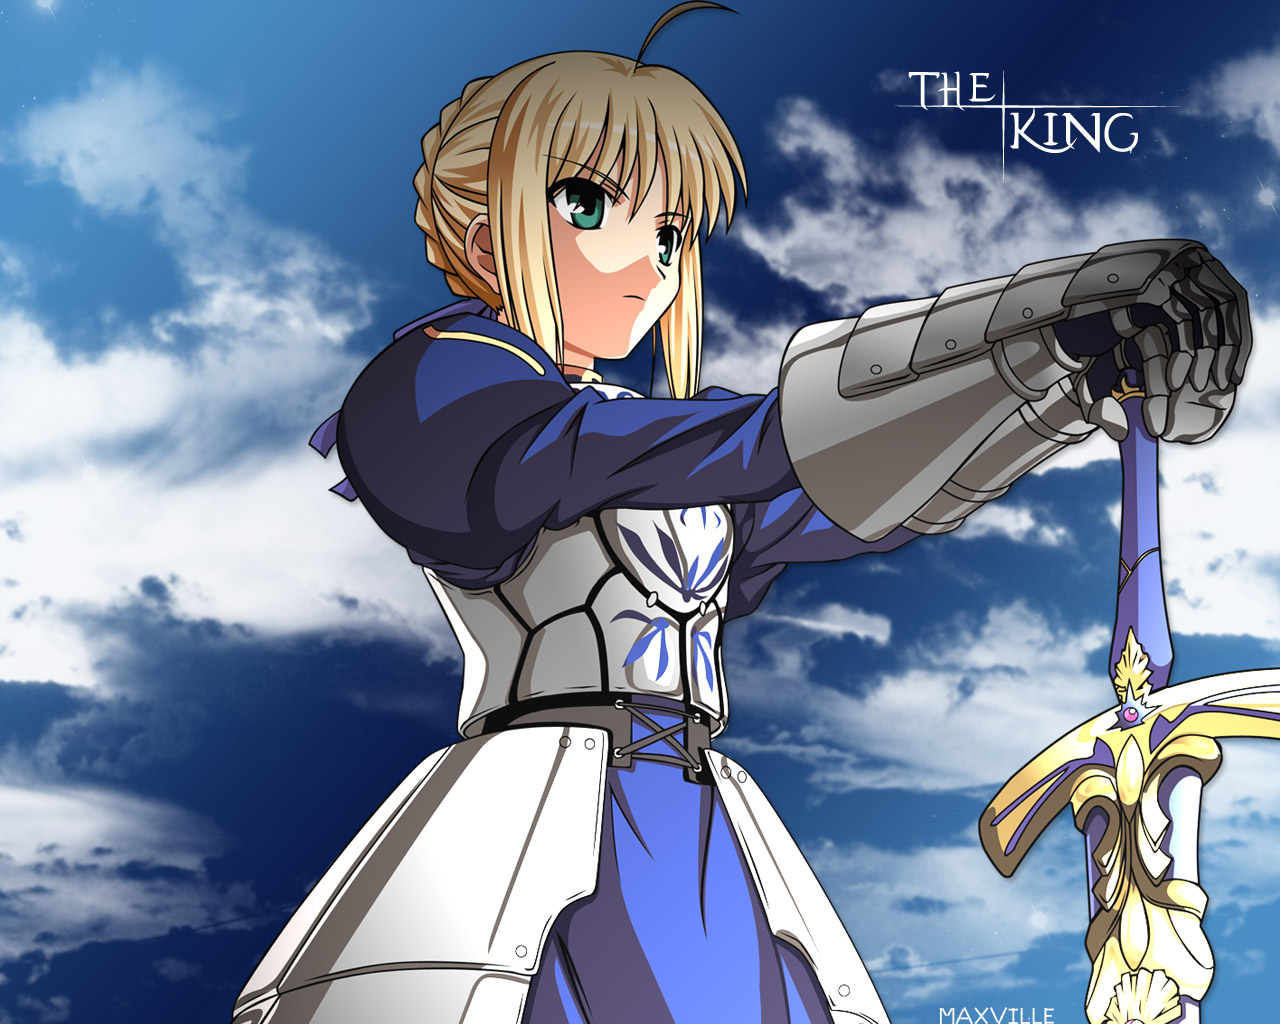 Saber Fate Stay Night 25737672 1280 1024